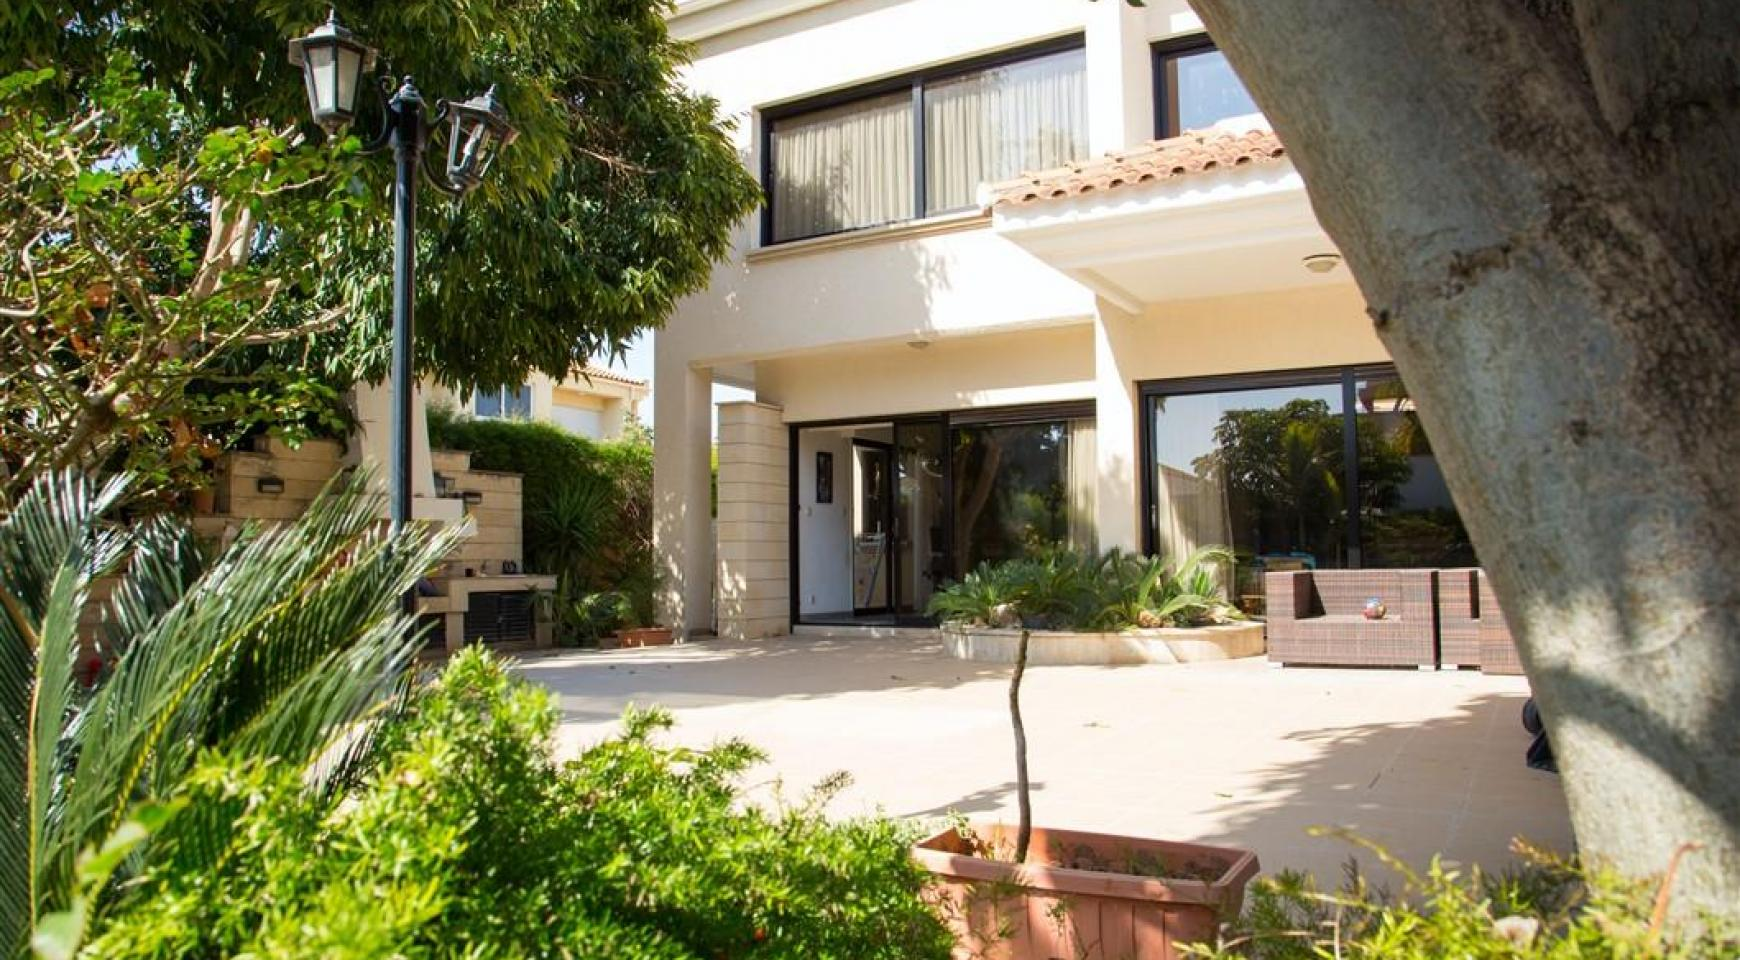 4 Bedroom Villa in Germasogeia Area - 2